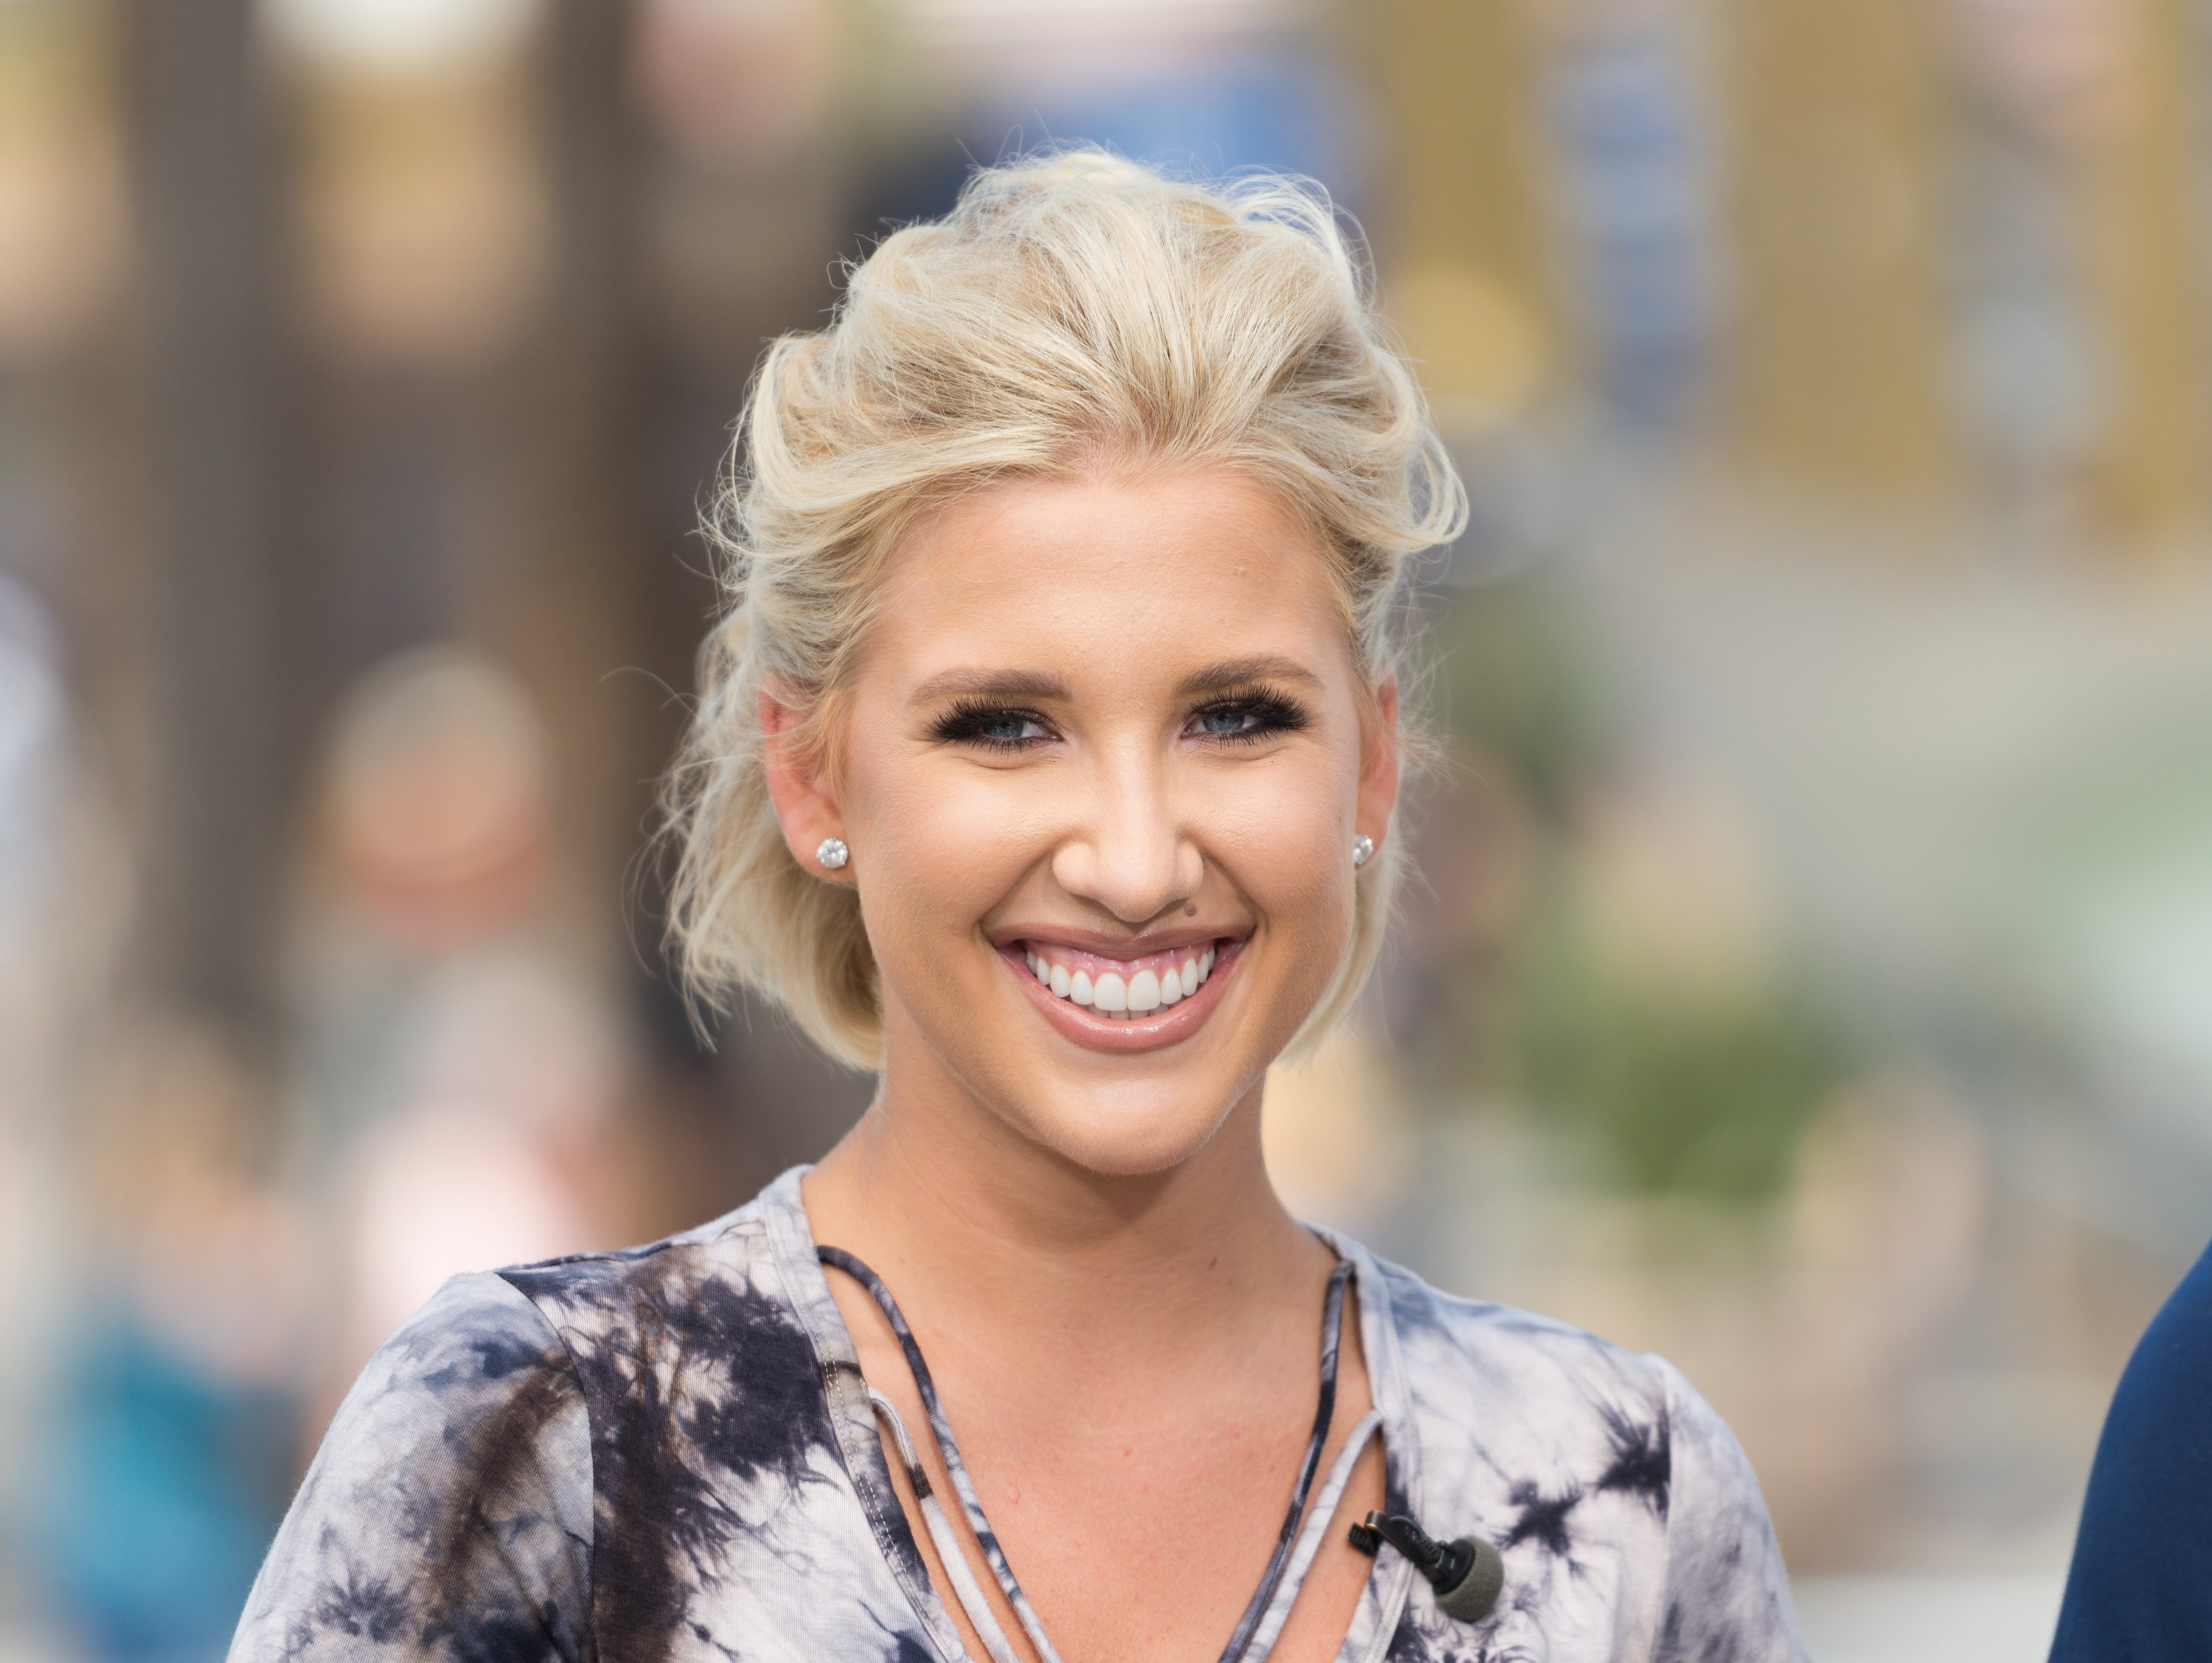 Savannah Chrisley at Universal Studios Hollywood on July 18, 2017 in Universal City, California | Photo: Getty Images